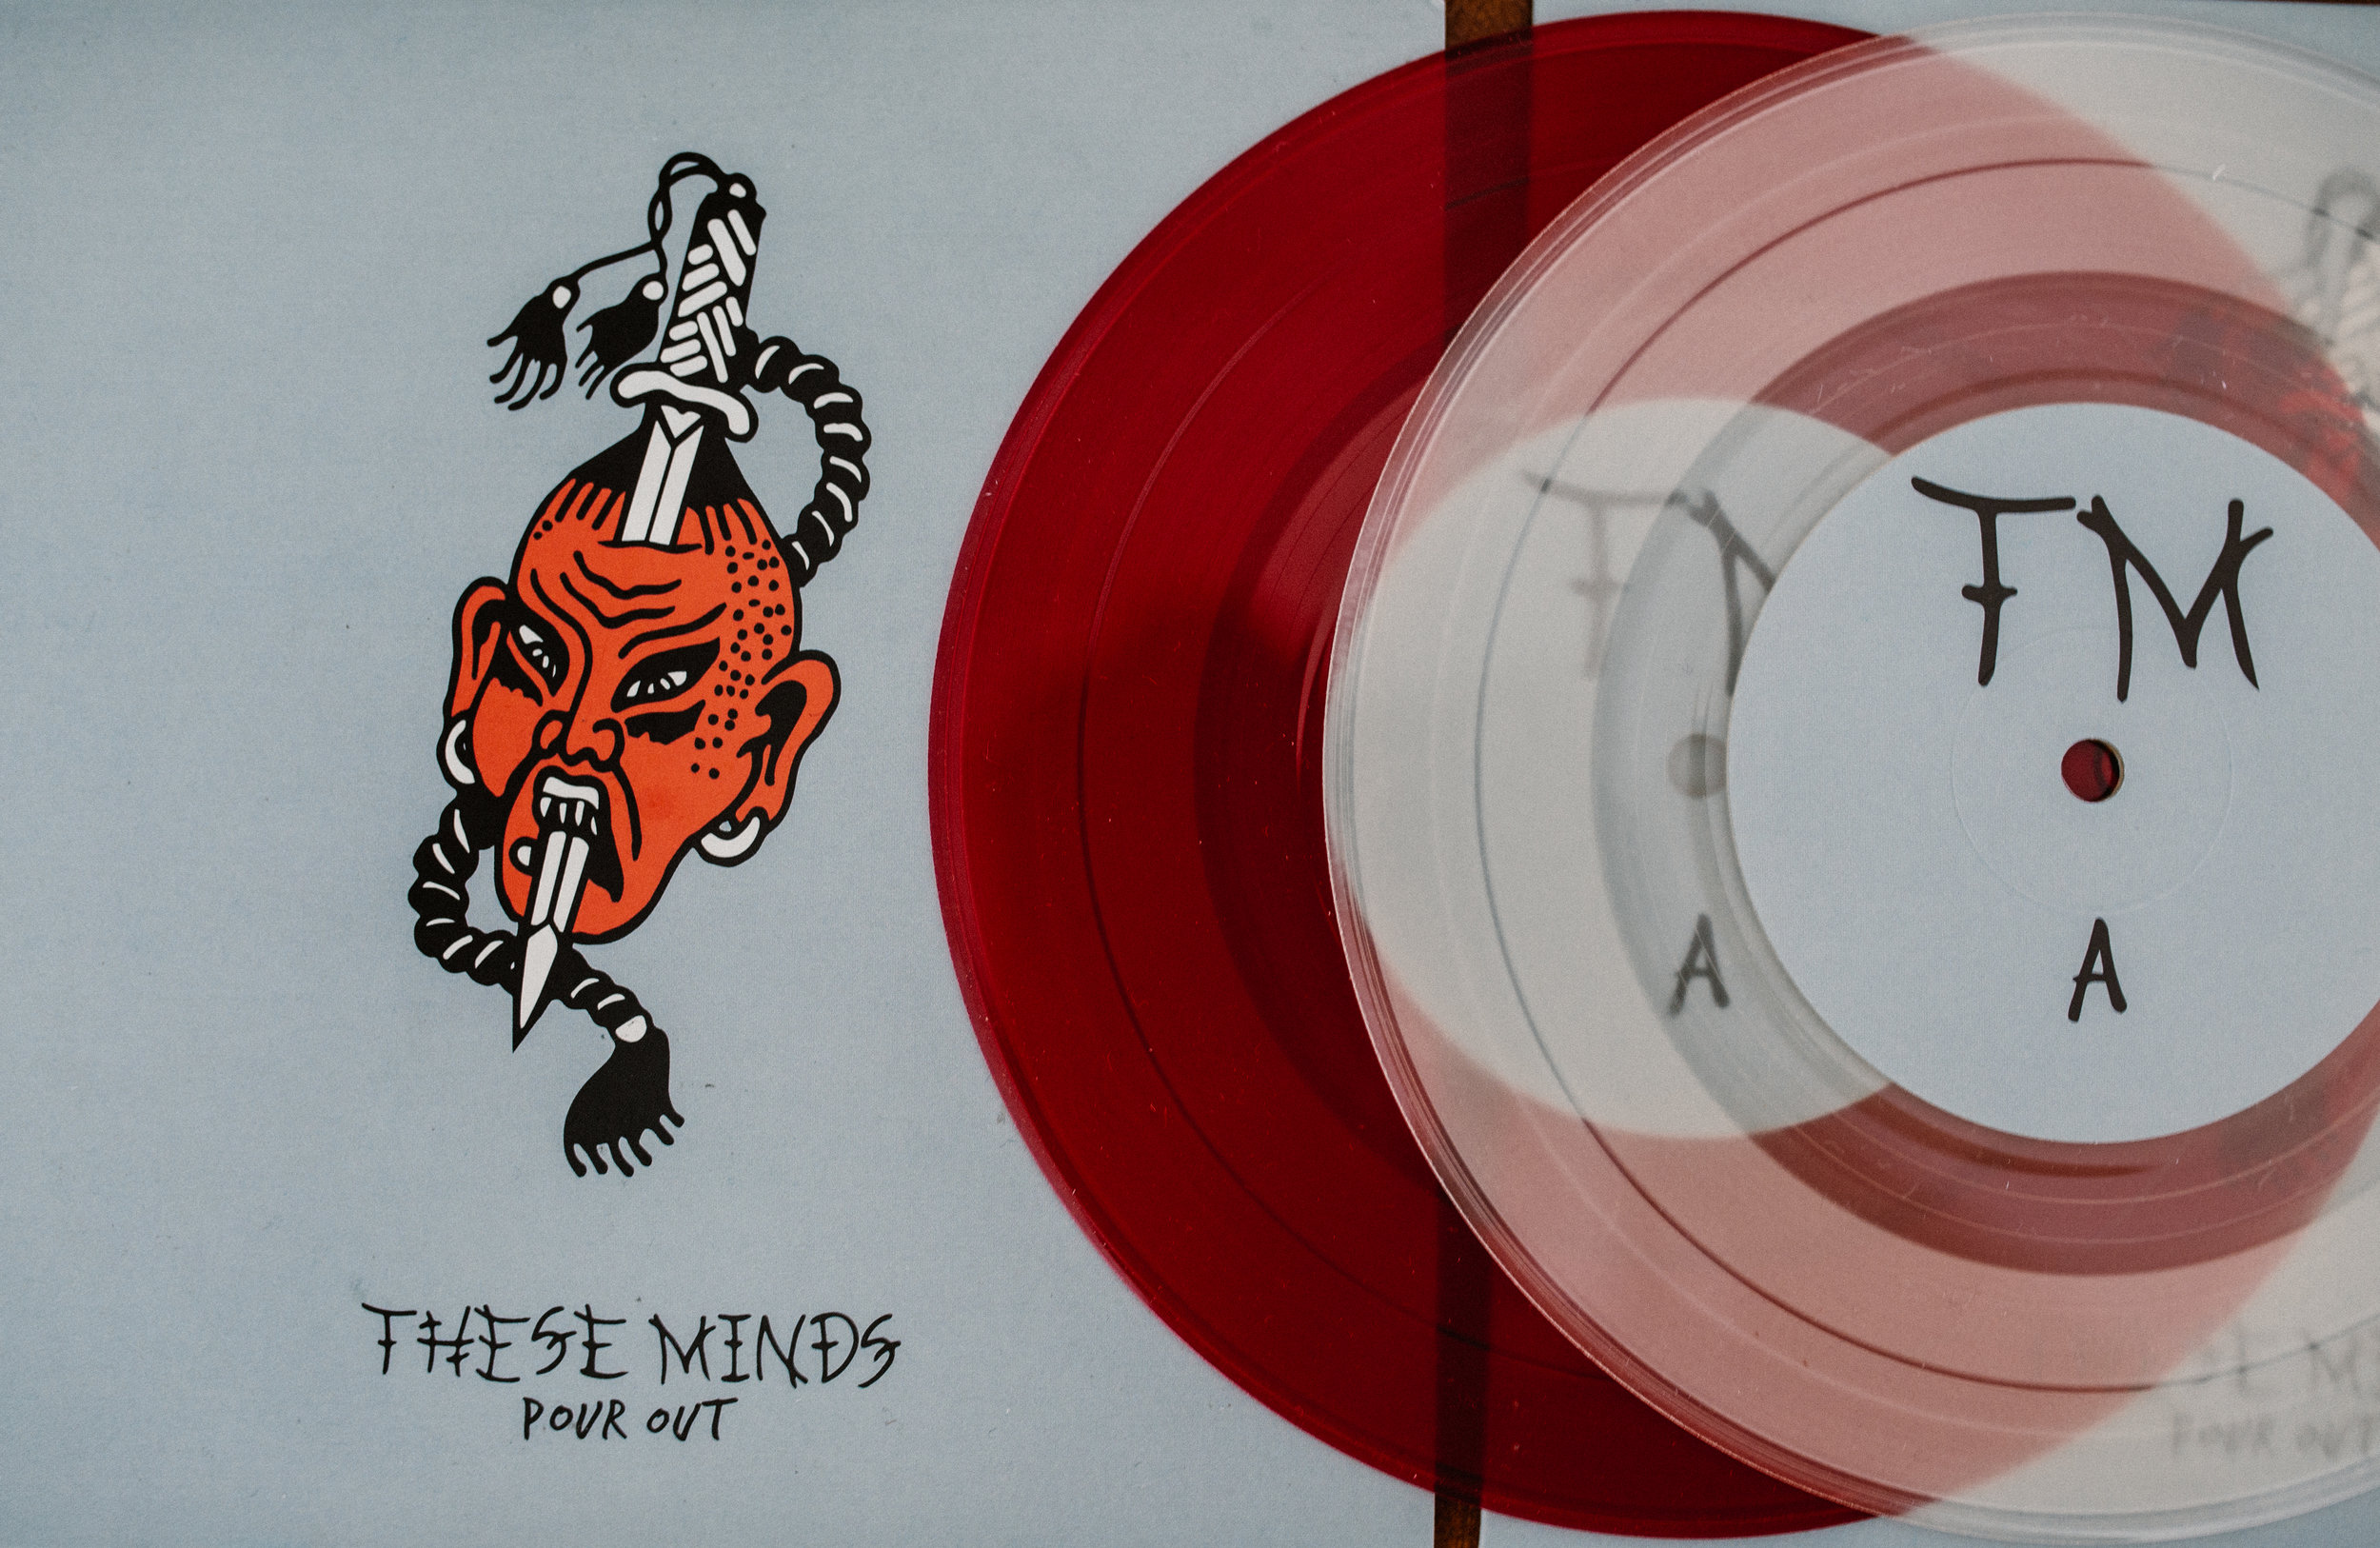 "THESE MINDS 'POUR OUT' VINYL 7"" - $6"